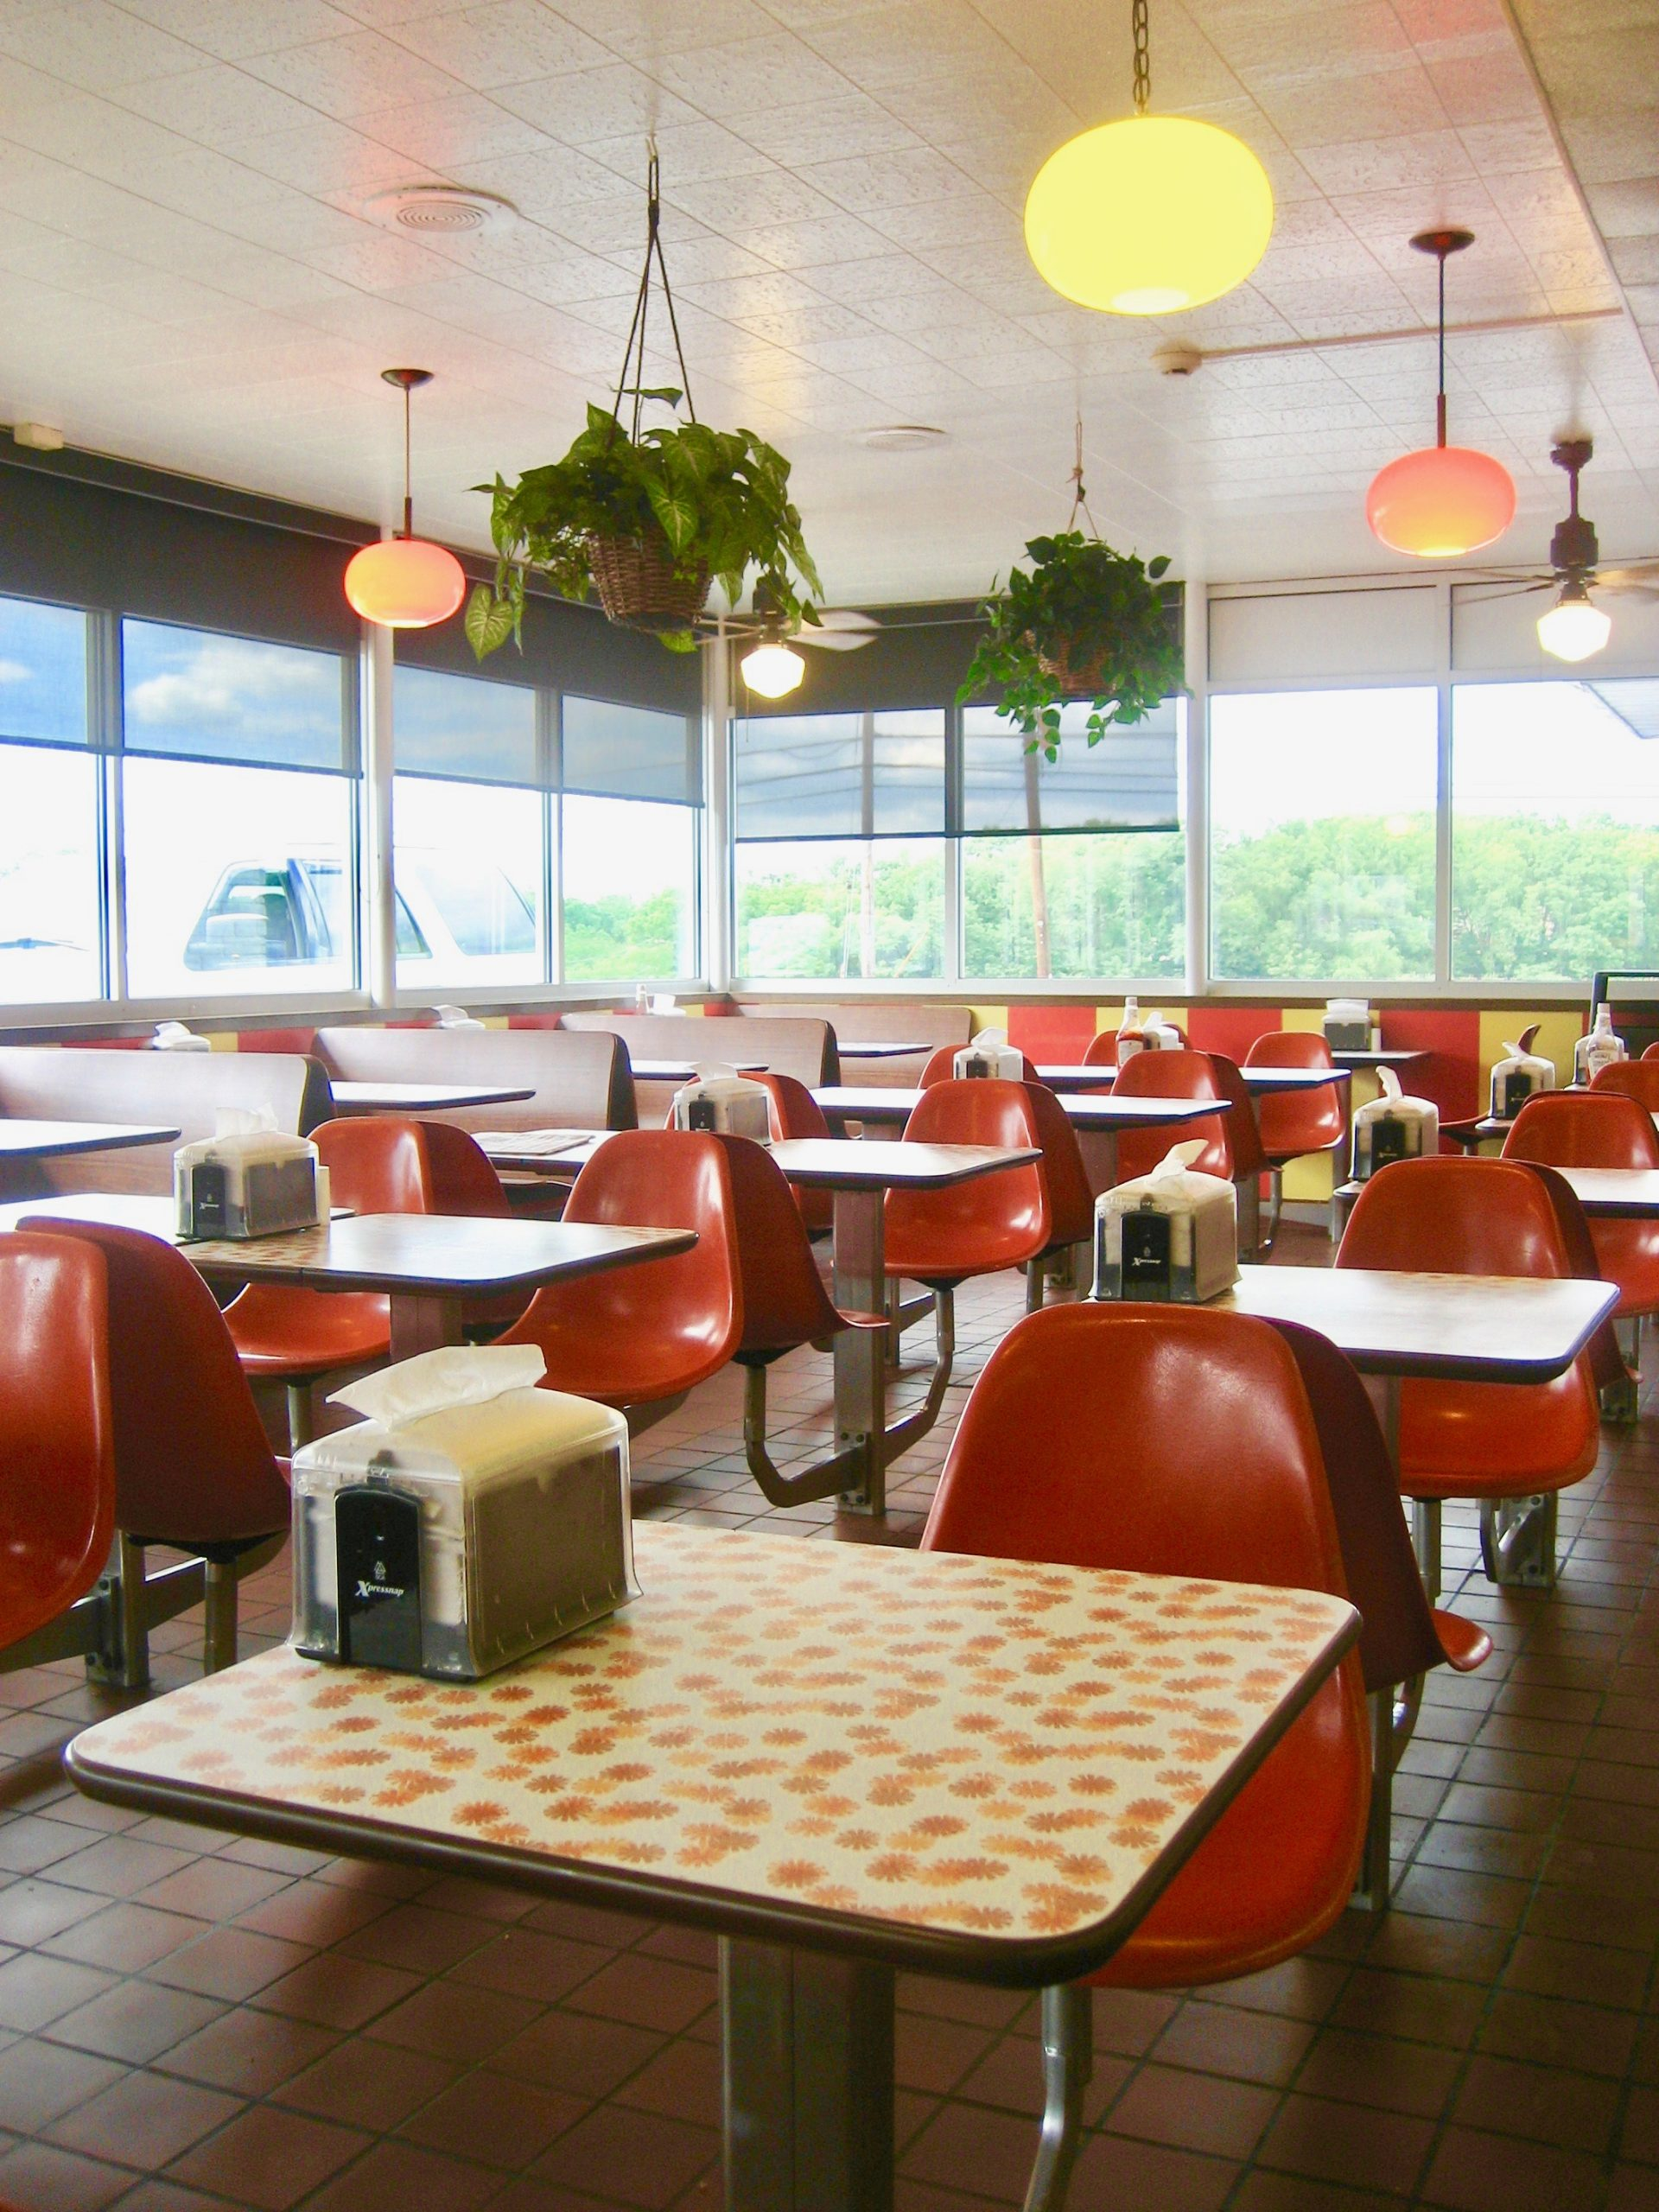 mod-betty-Speck_s Chicken Interior Retro Roadmap.jpg